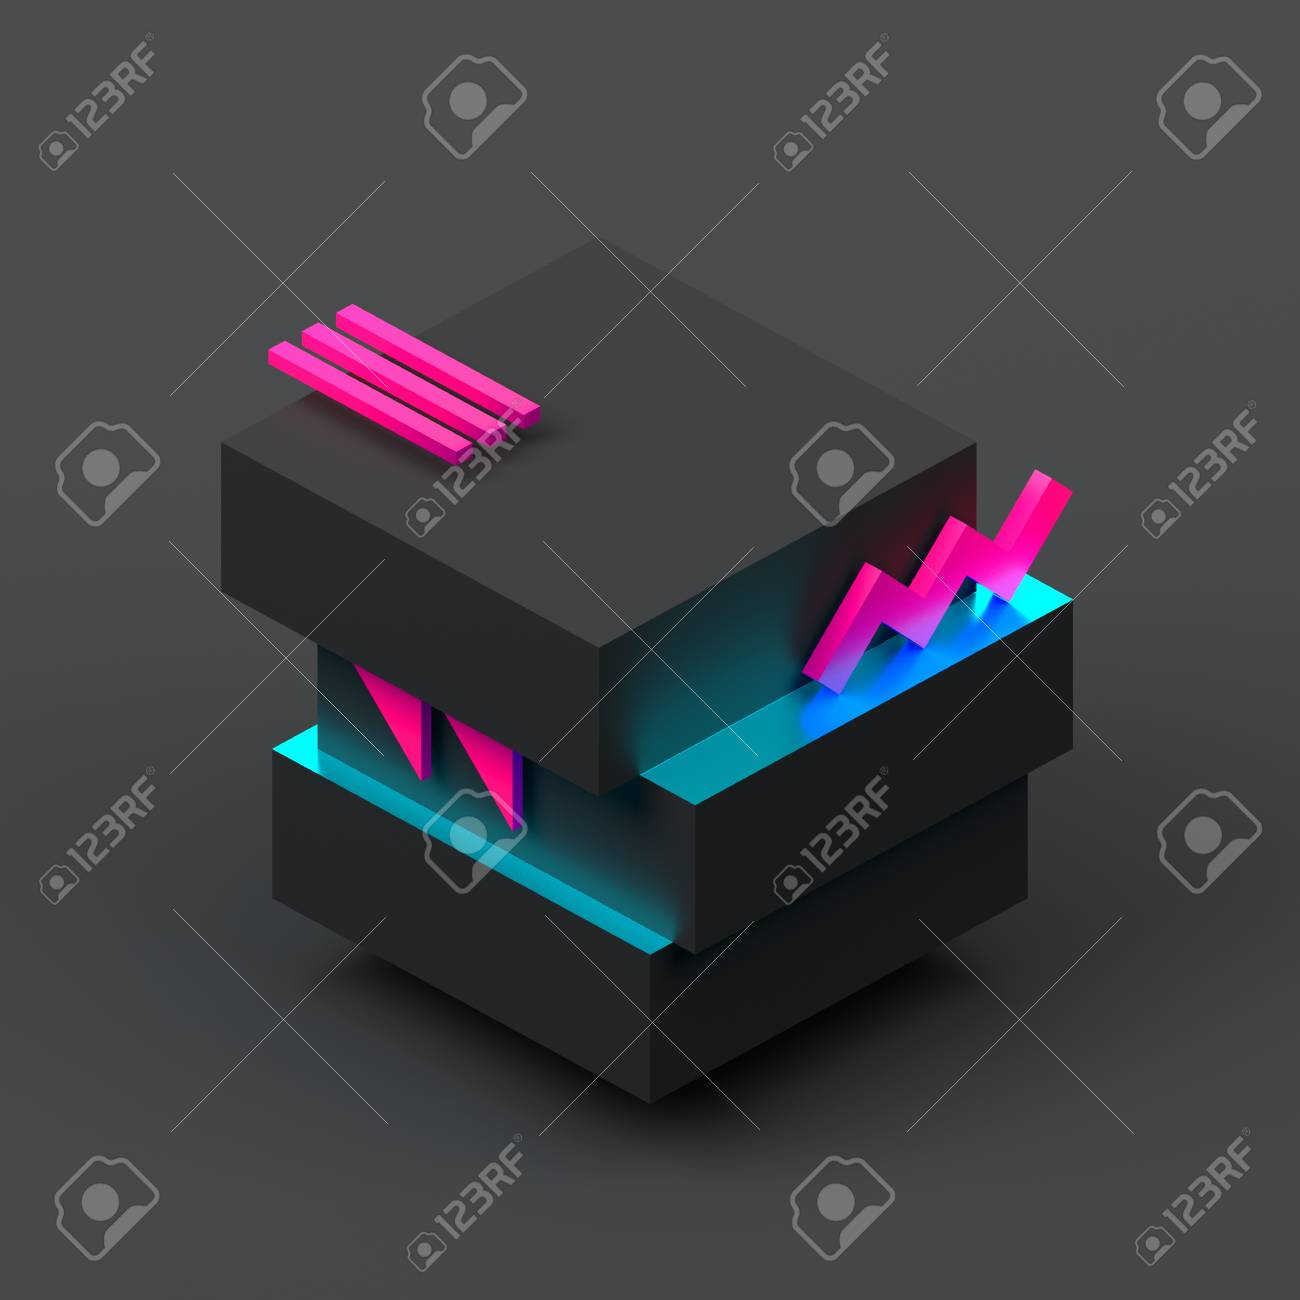 Abstract 3d rendering of geometric shapes  Modern background